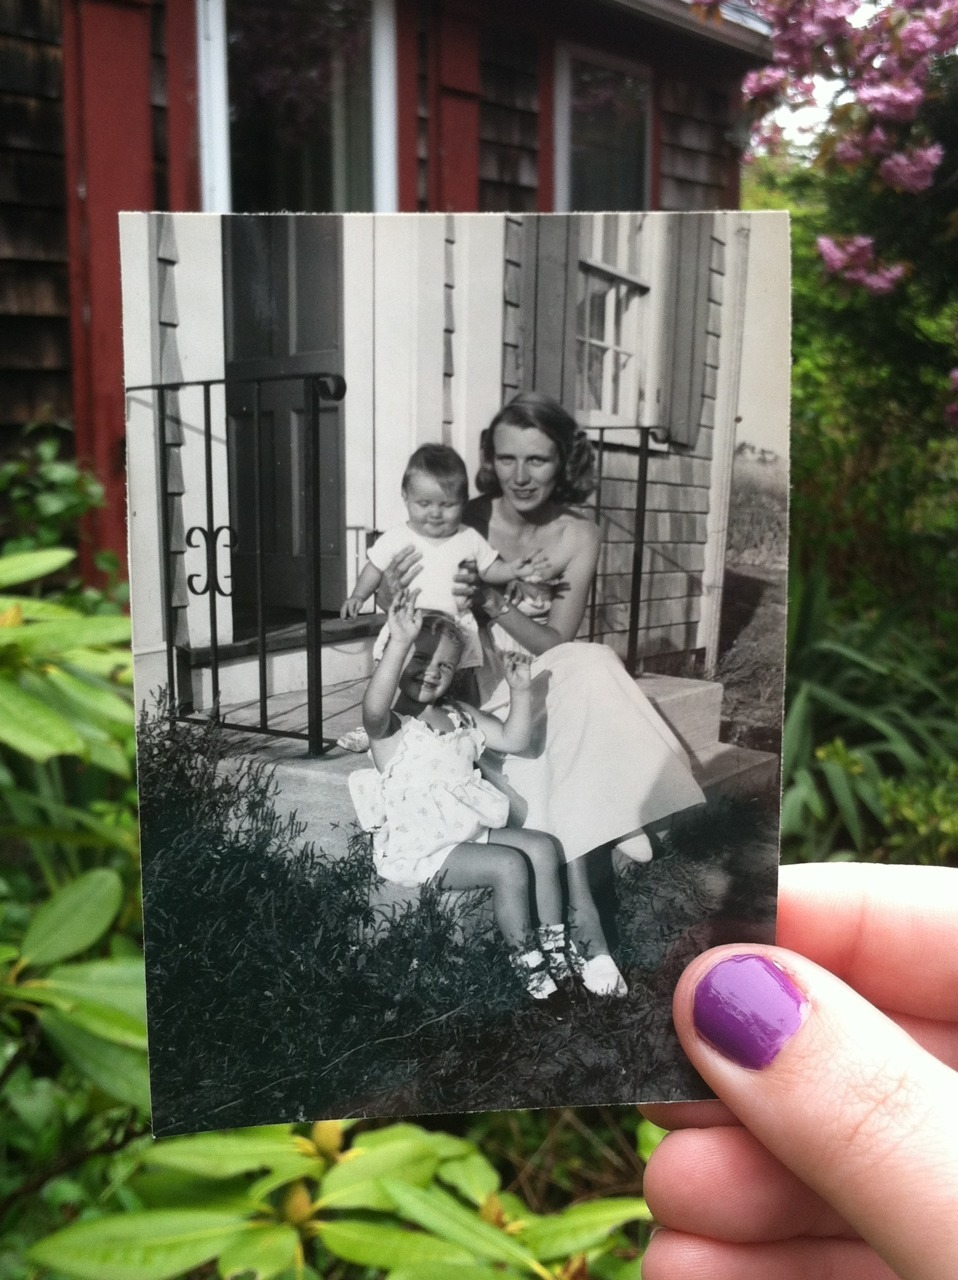 Dear Photograph,  On a carefree summer's day on Cape Cod, my grandmother poses with my mother and uncle by her side. 60 years later, four generations of our family gathered this weekend for her 90th birthday. Through World War II, six children, many grandchildren & great grandchildren, her beauty never faded. My mother and grandmother continue to be an inspiration for me every day, and I'm blessed to have known a life with them. Happy Birthday Grammie, and Happy Mother's Day mom!  Love,  Andrea